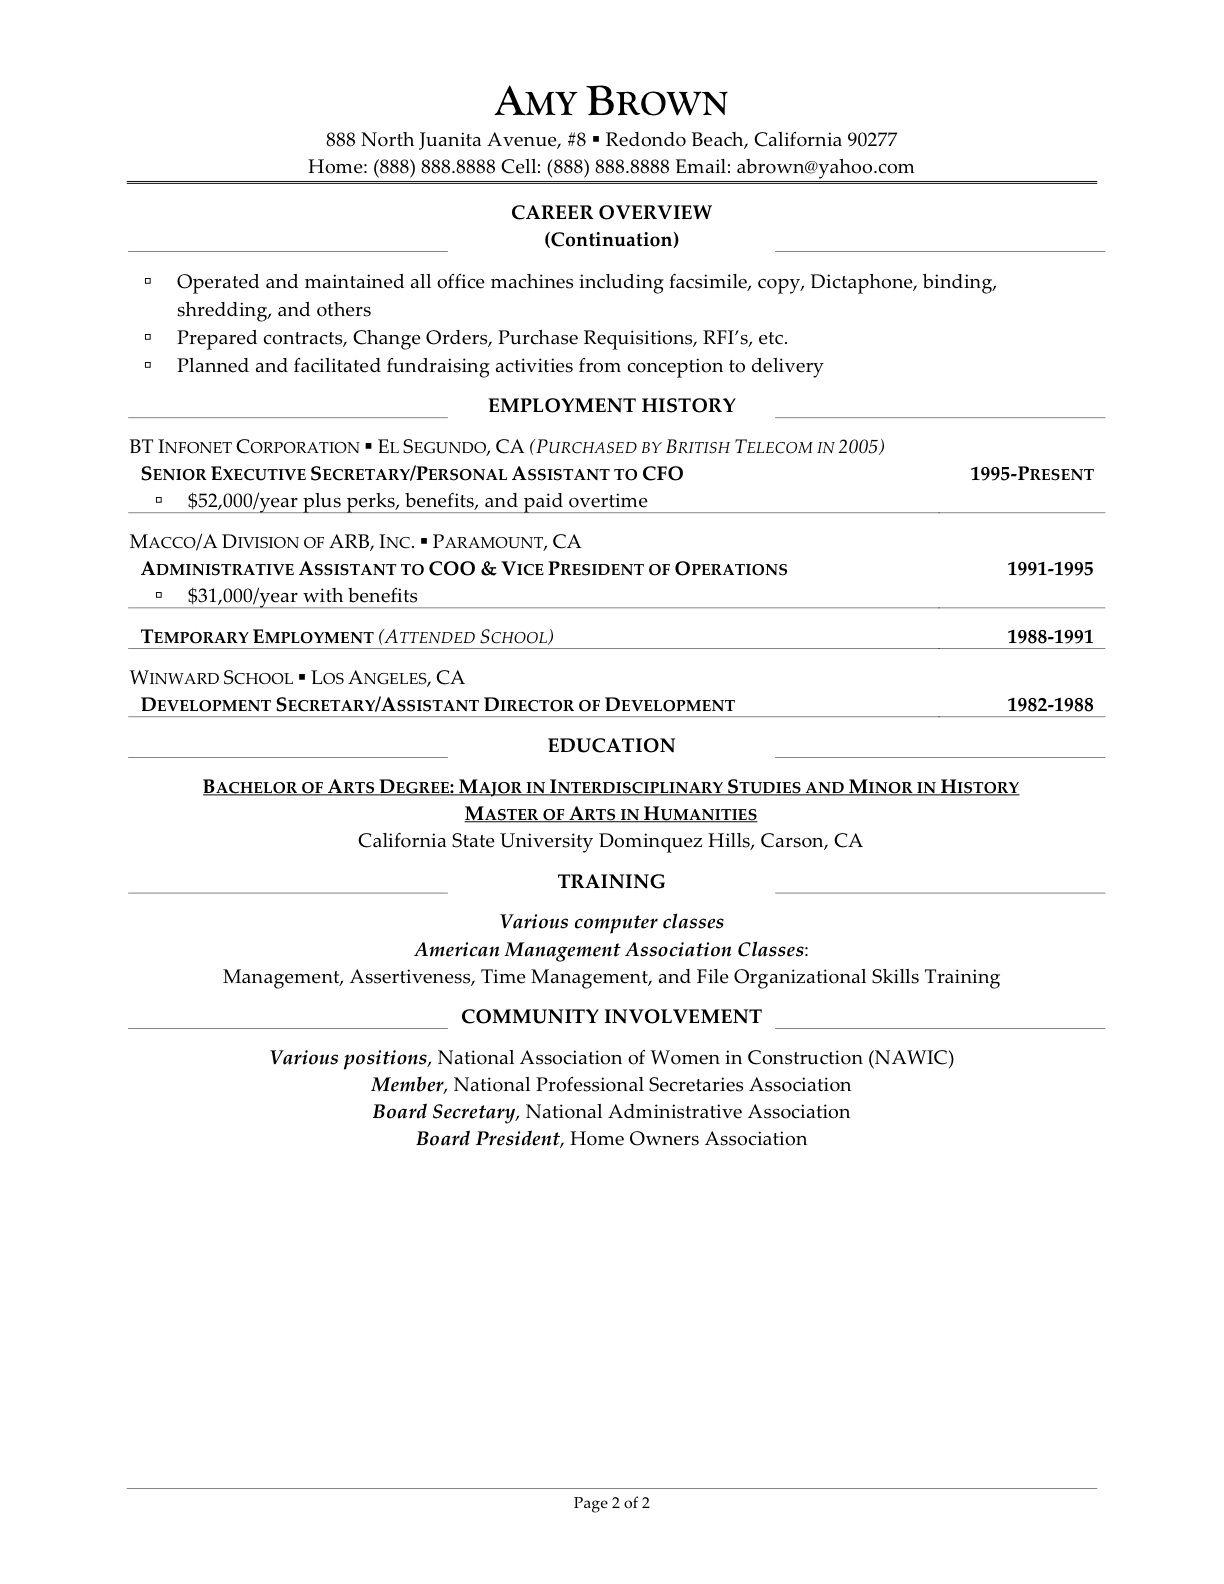 Resume Objective For Administrative Assistant If You Seek A Job For Administrative Position You Need To Fulfill